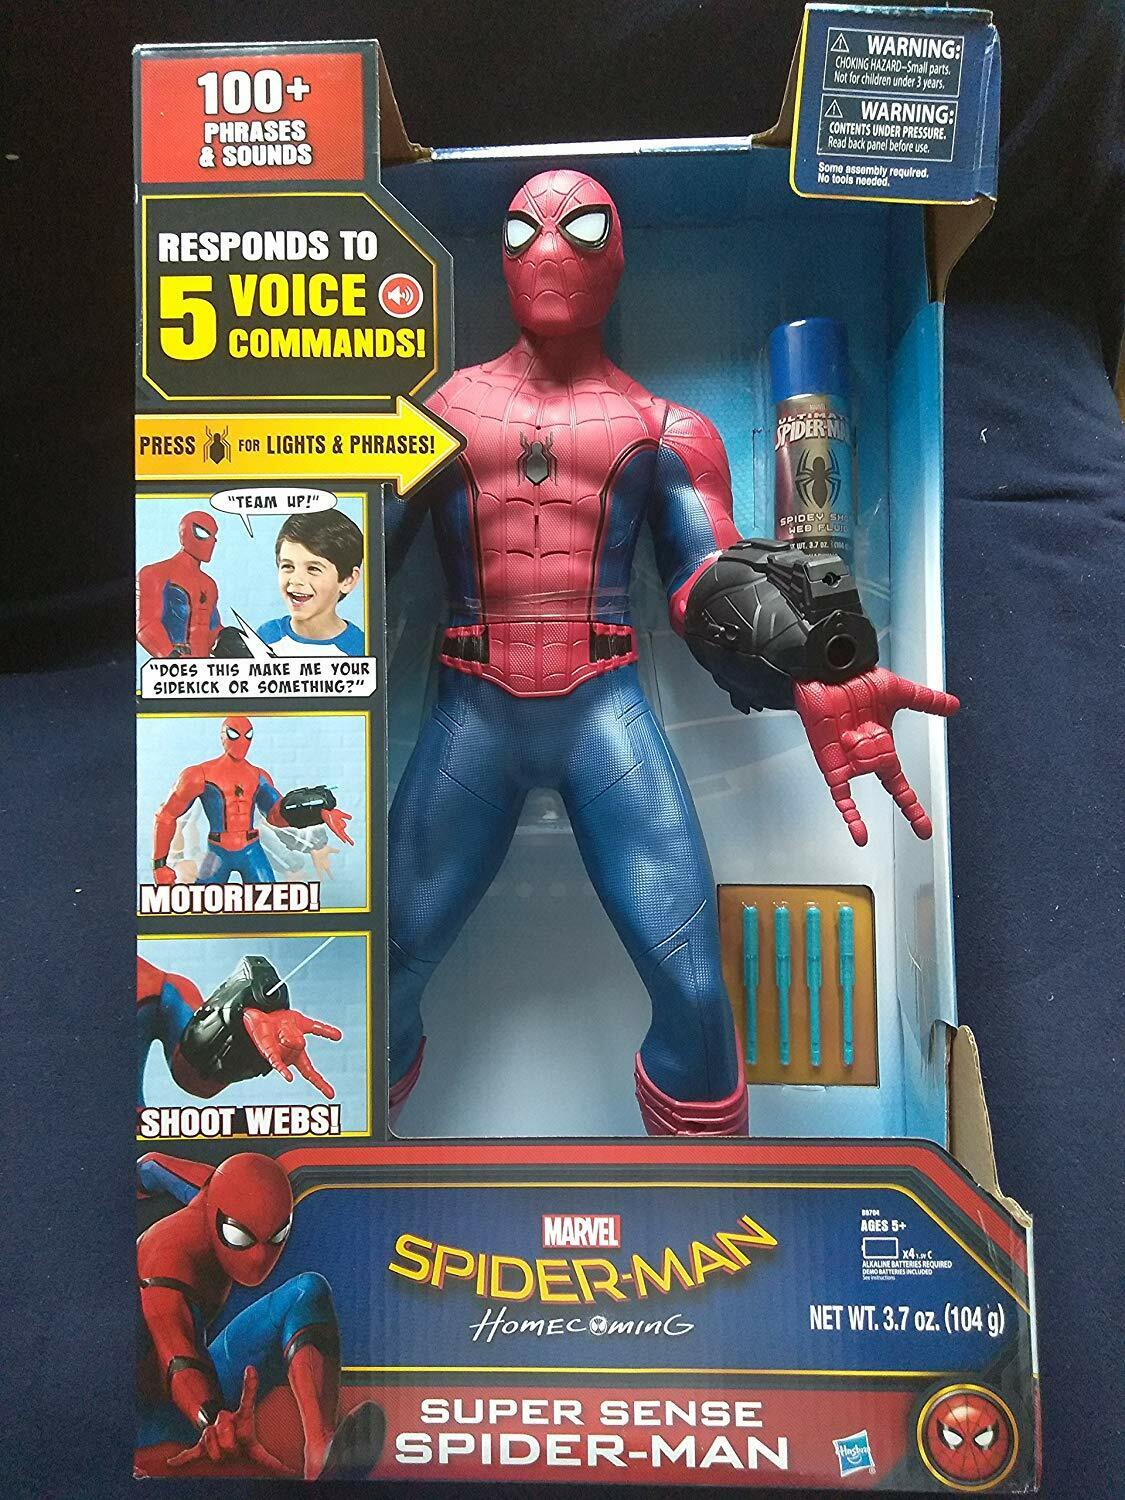 Marvel Spider-Man Motorized 25 IN Tall 100+ Phrases Lights Up & Shoots Web Fluid